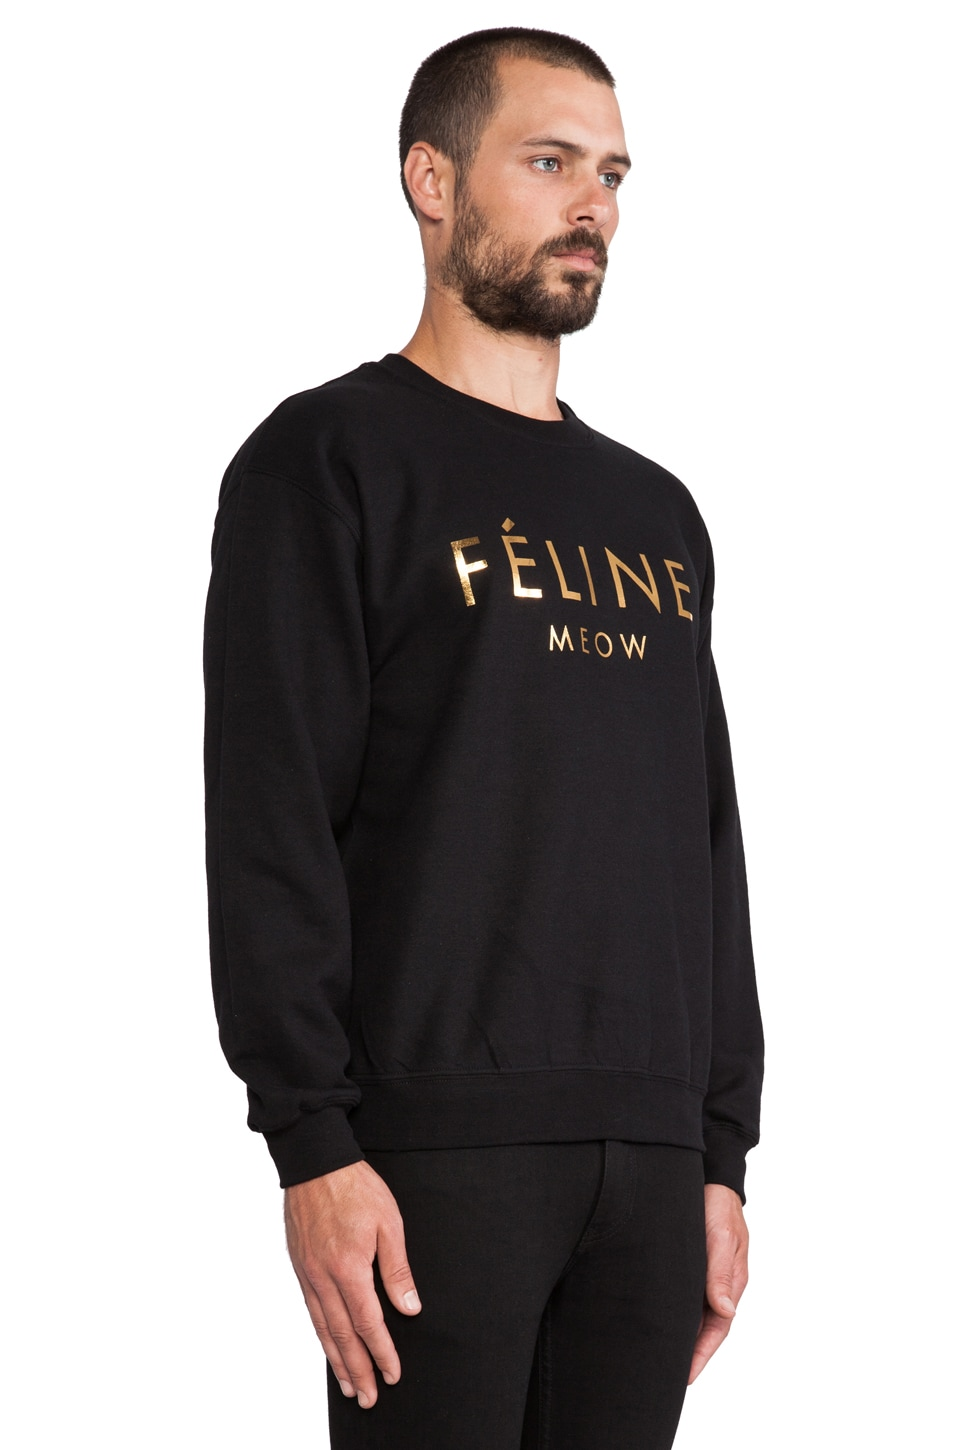 Brian Lichtenberg Feline Sweatshirt in Black/Gold